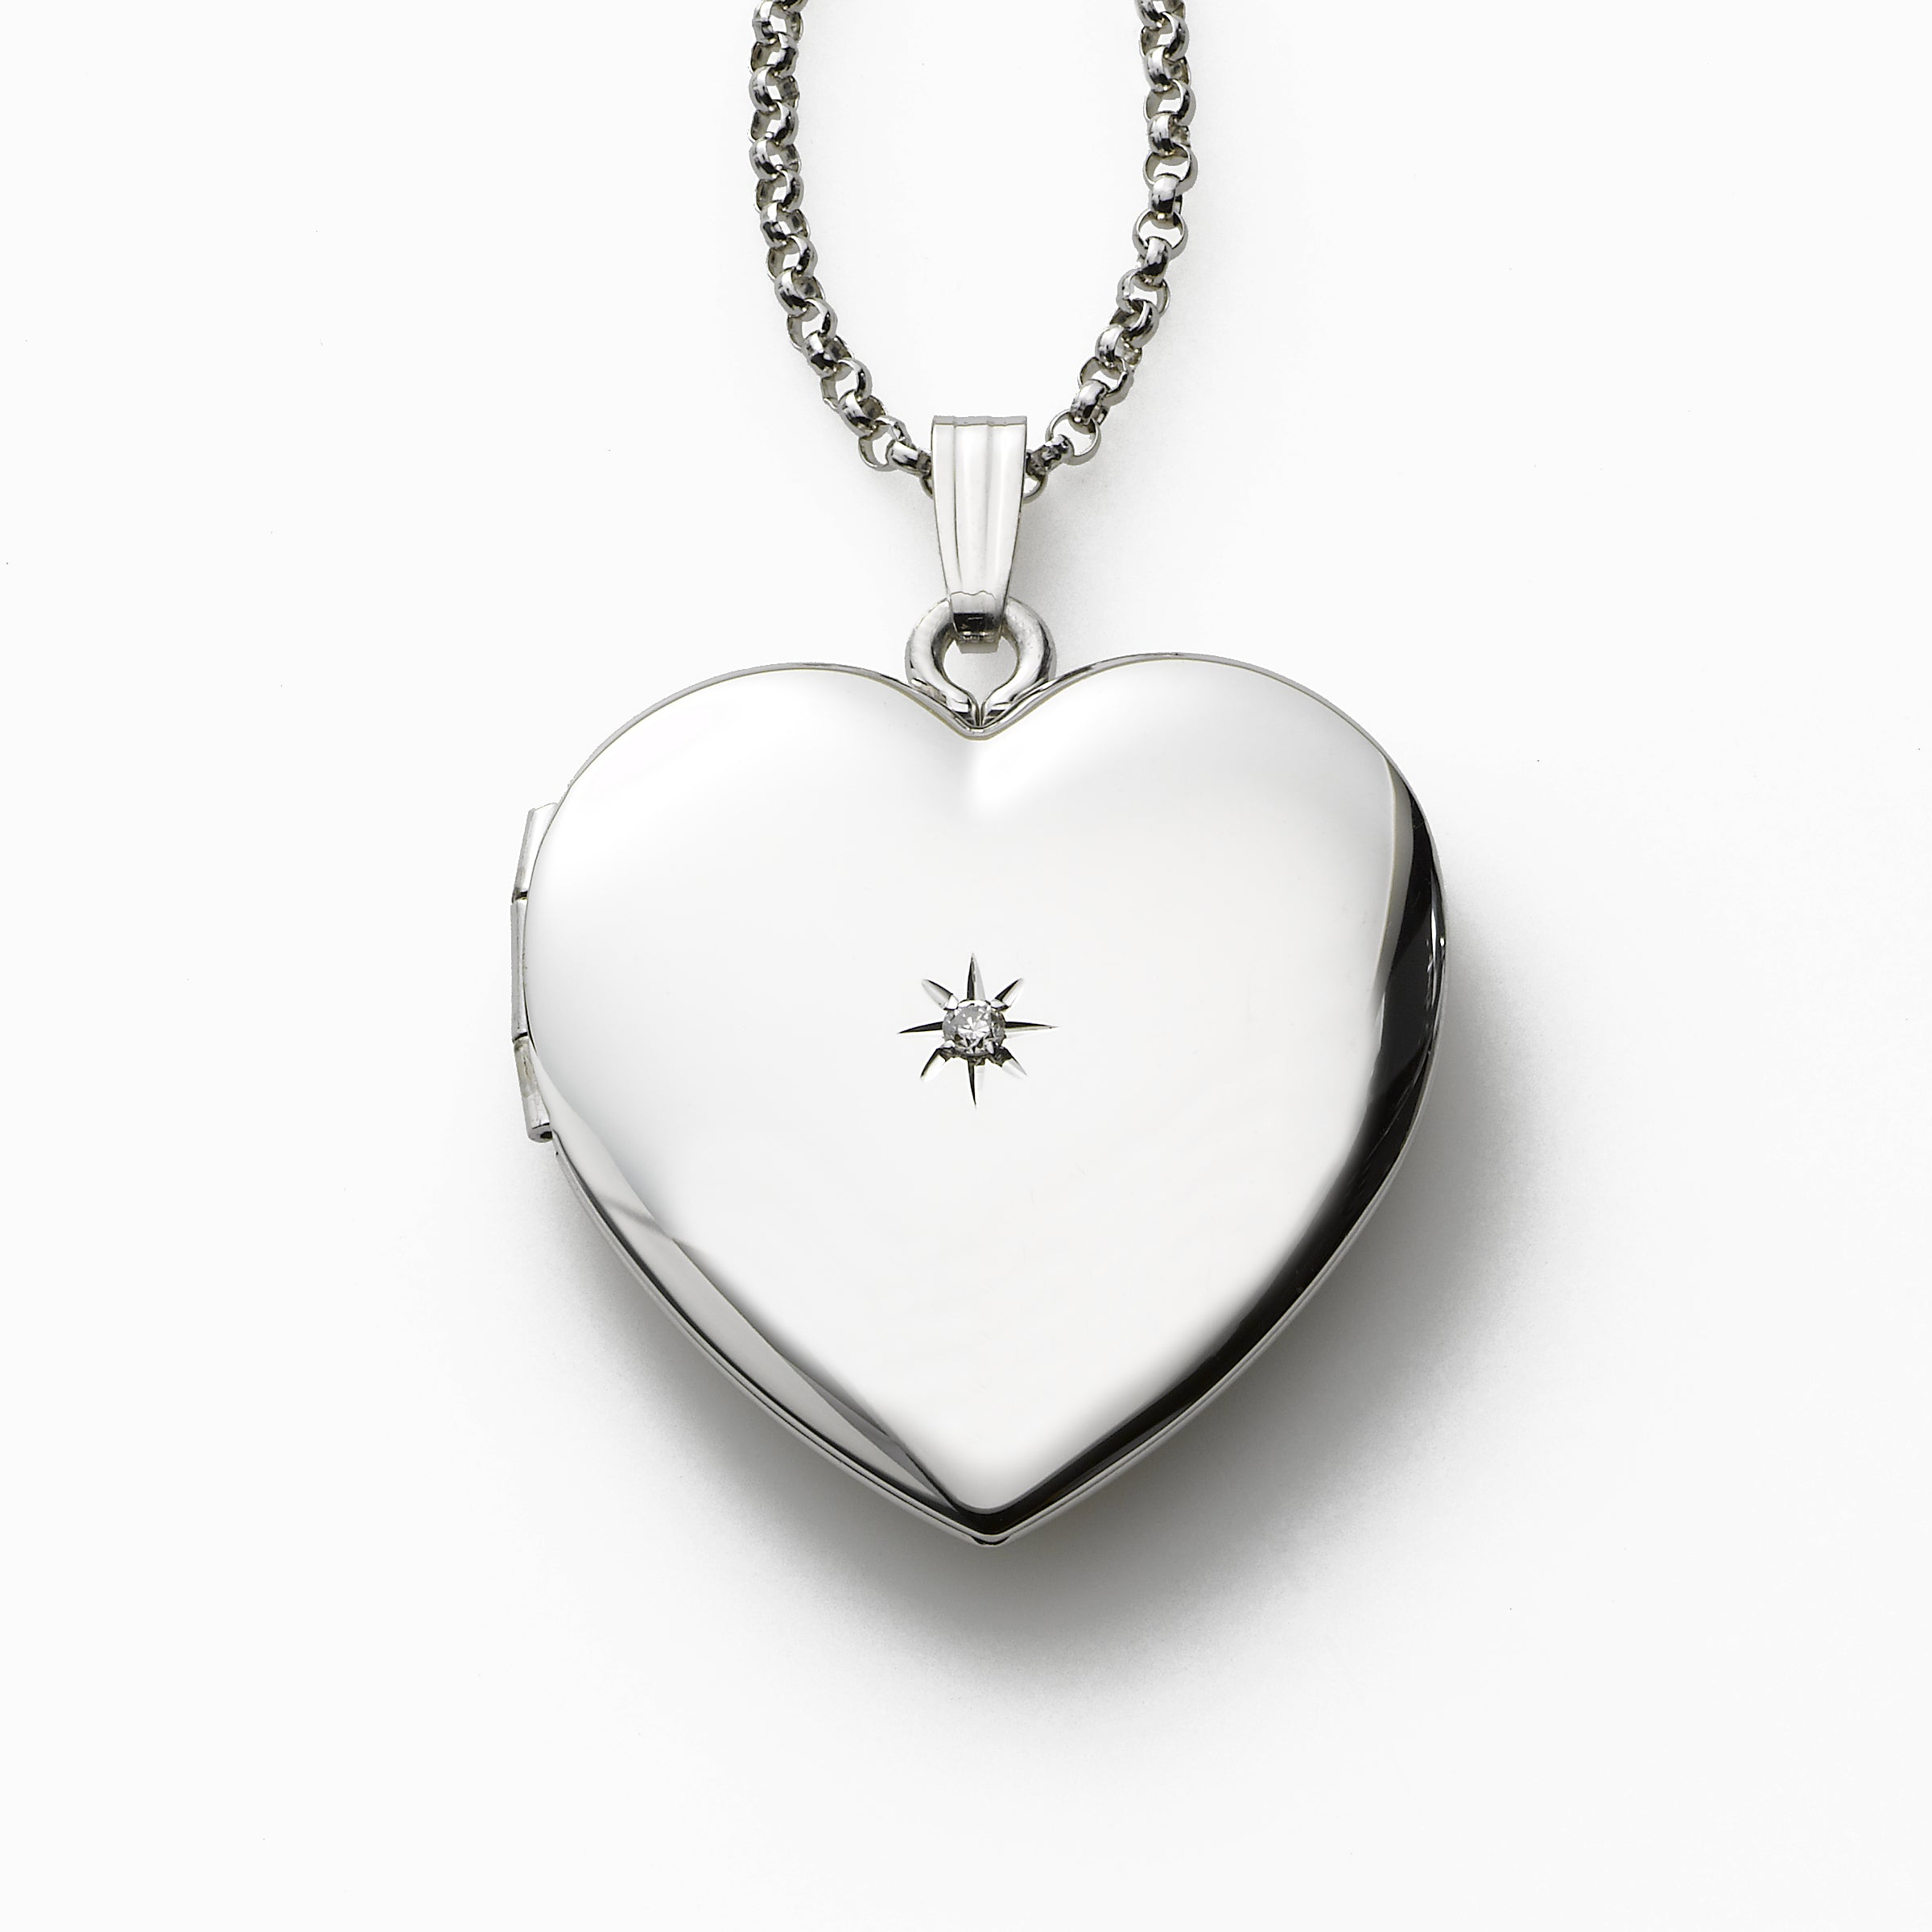 Heart Shaped Locket Necklace with Diamond Accent, Sterling Silver, 20 Inches